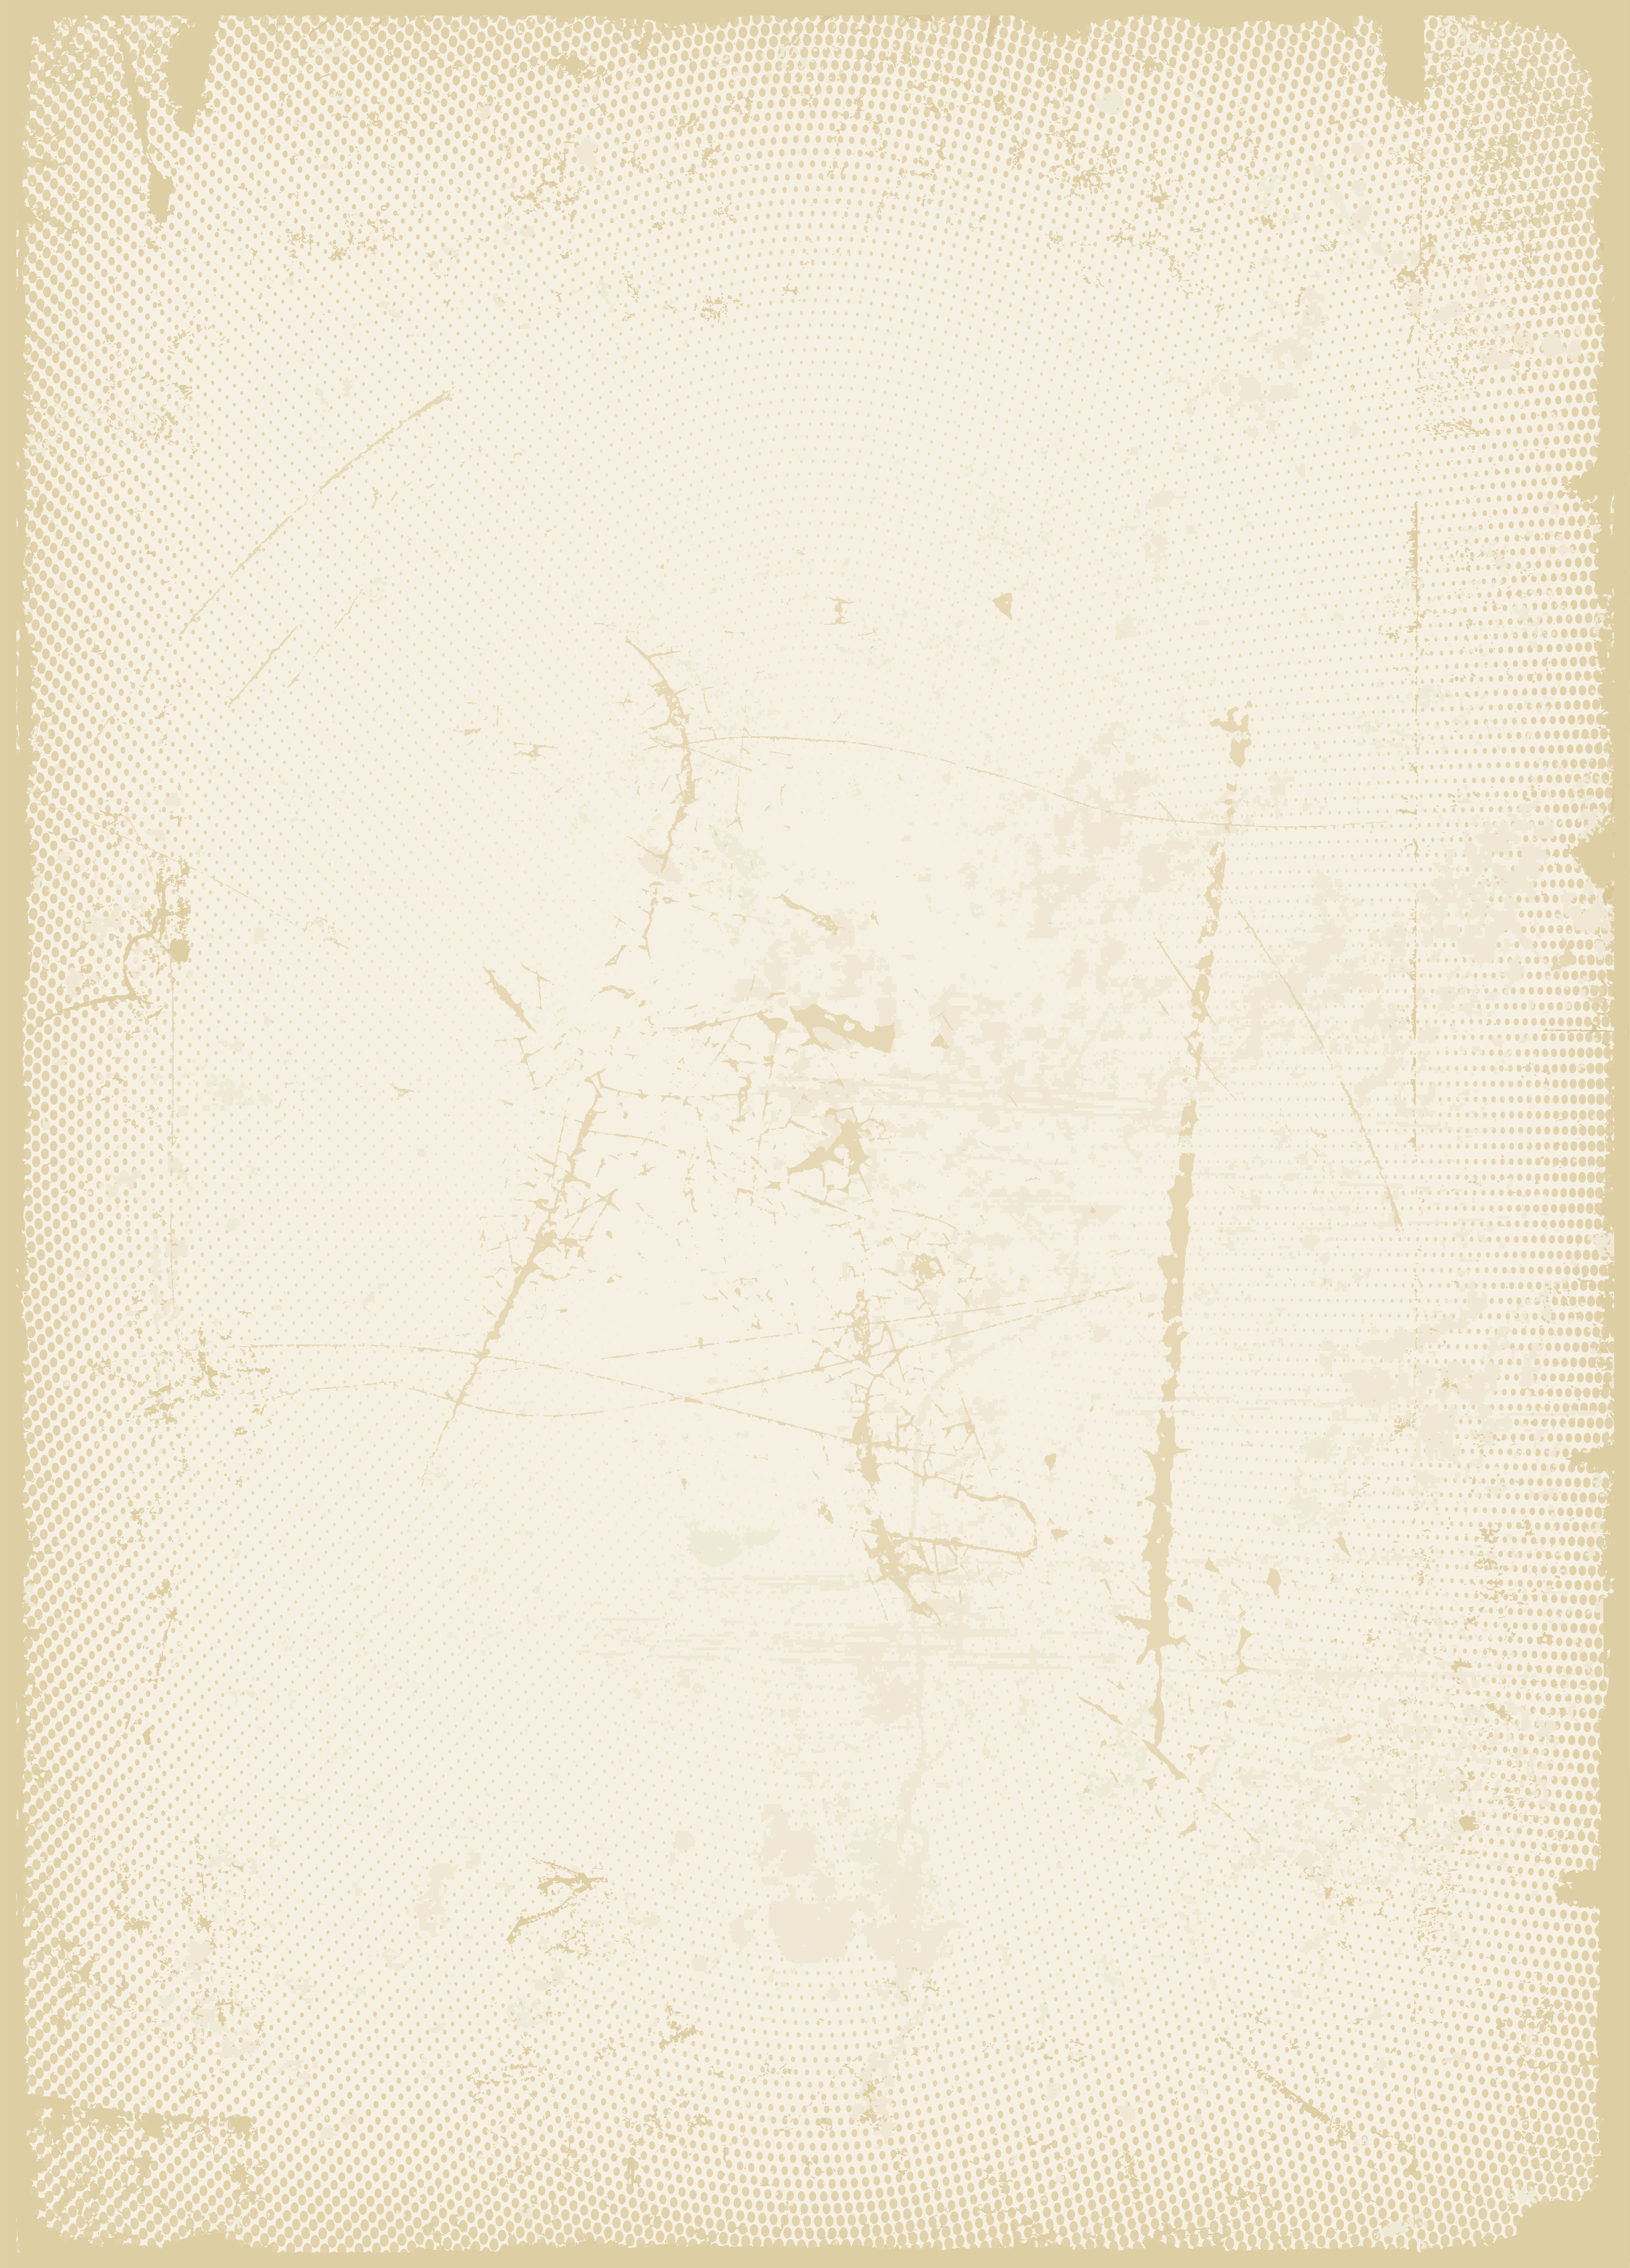 Old Paper Texture Background Download Free Vectors Clipart Graphics & Vector Art